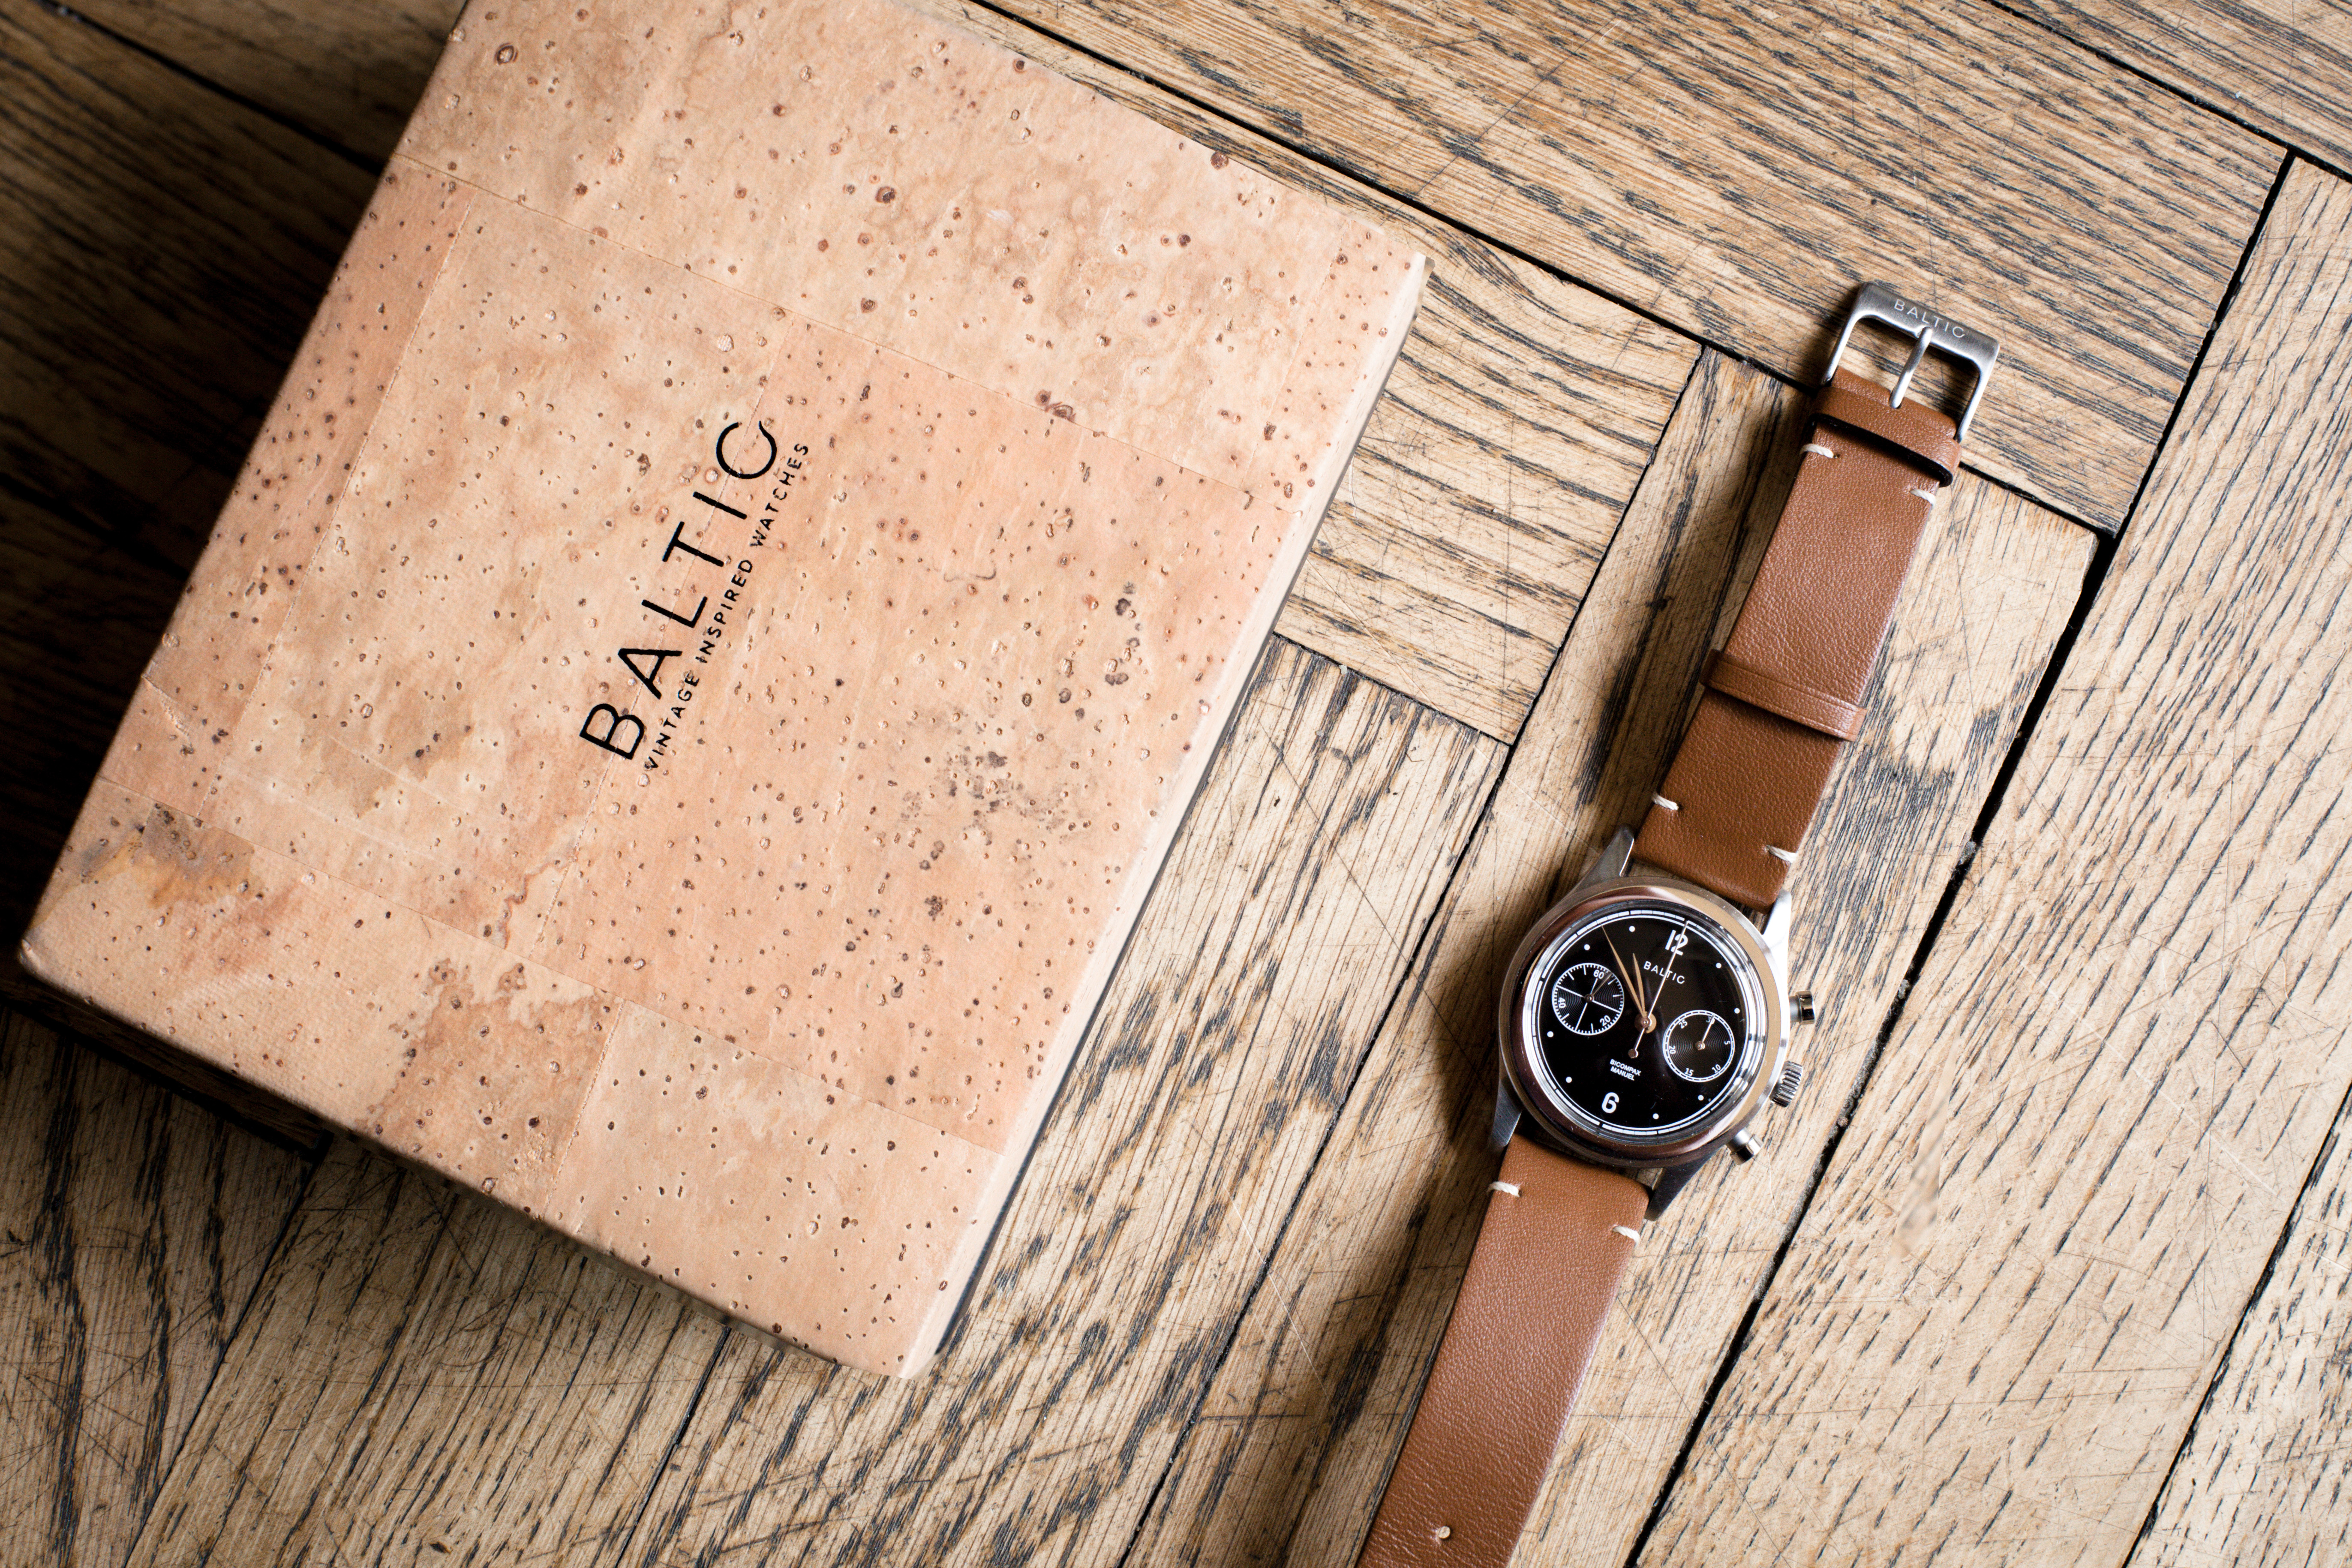 montre baltic ecrin liege